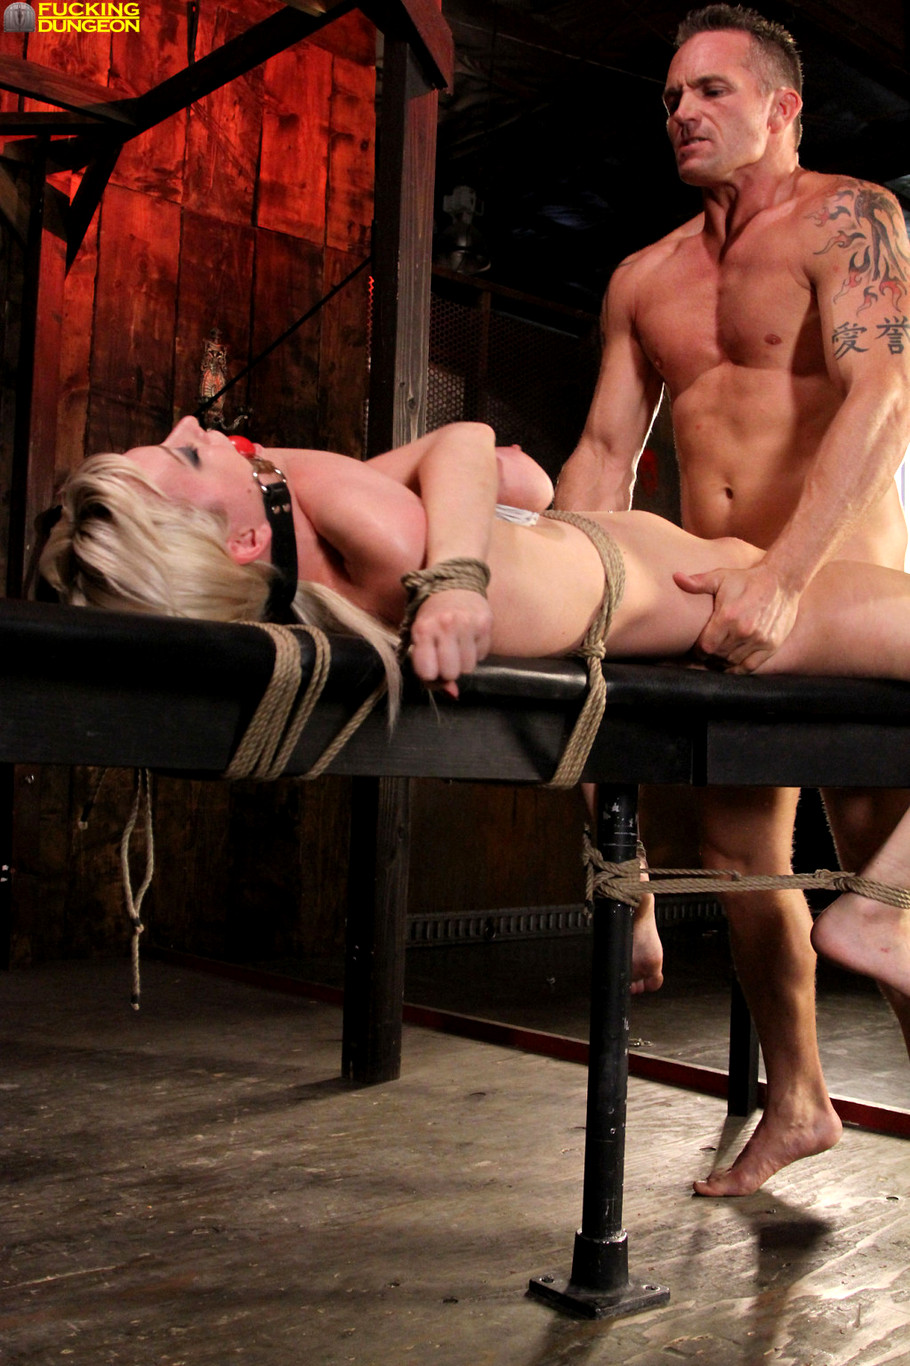 dungeon-fuck-miss-nude-pusy